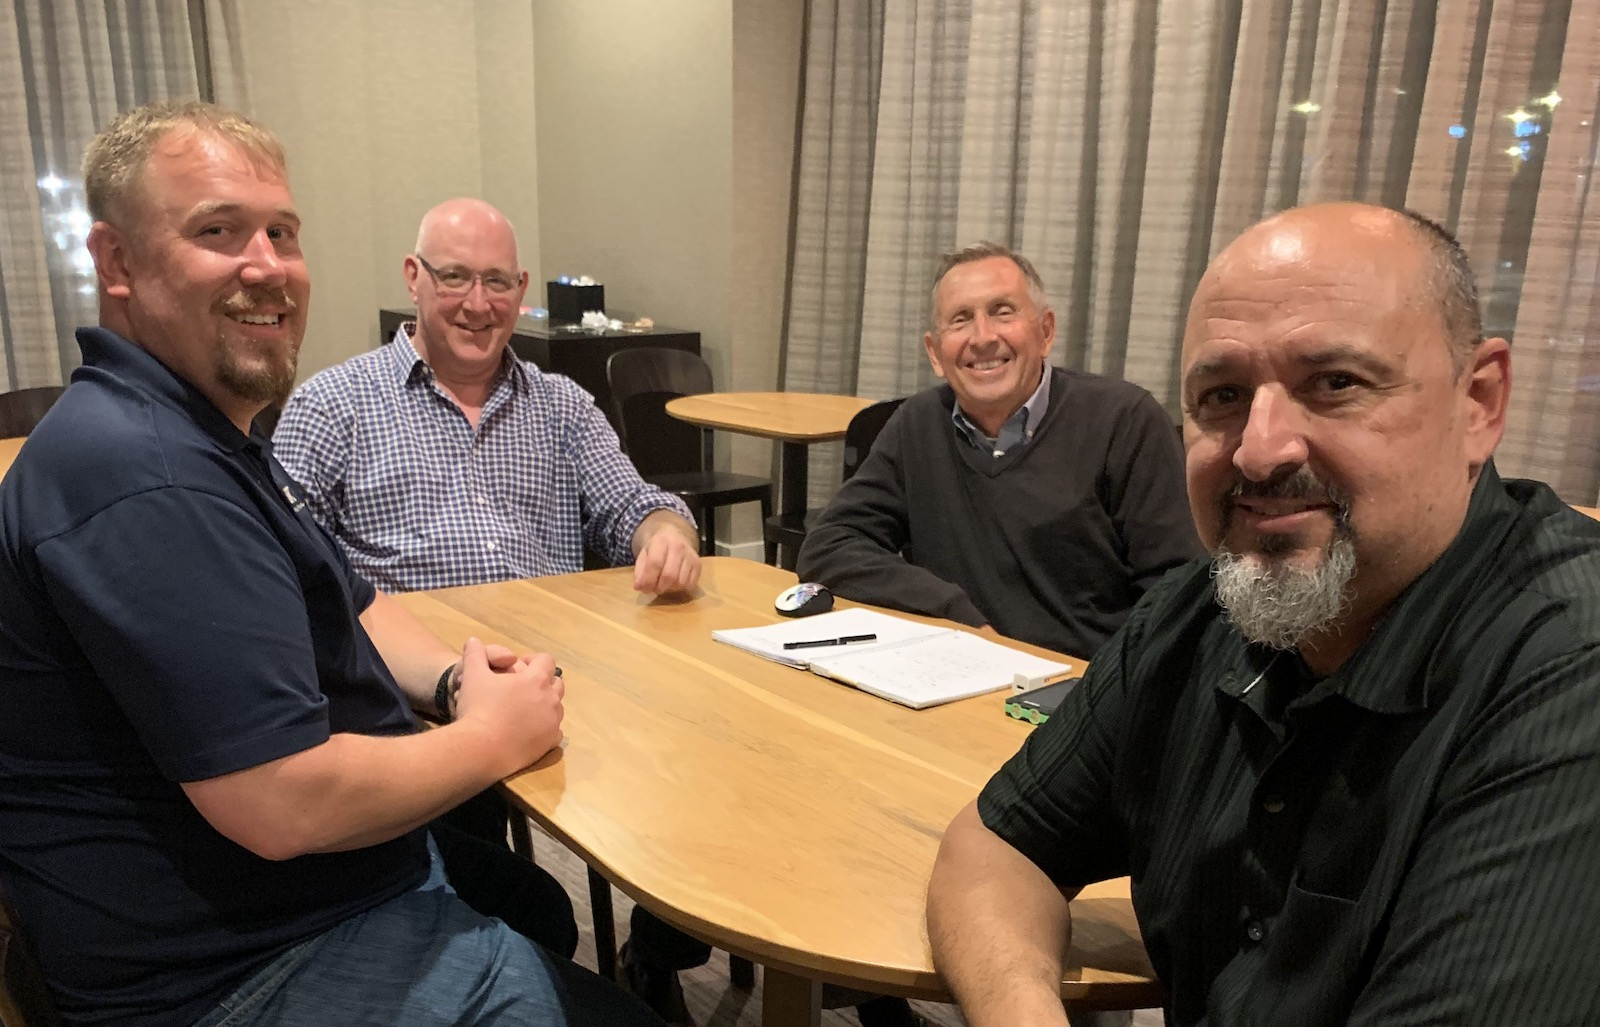 Gillespie & Powers and Thorp Technologies come together: Jack Gillespie, John Peterman, John Allen, and Gary Hodge>